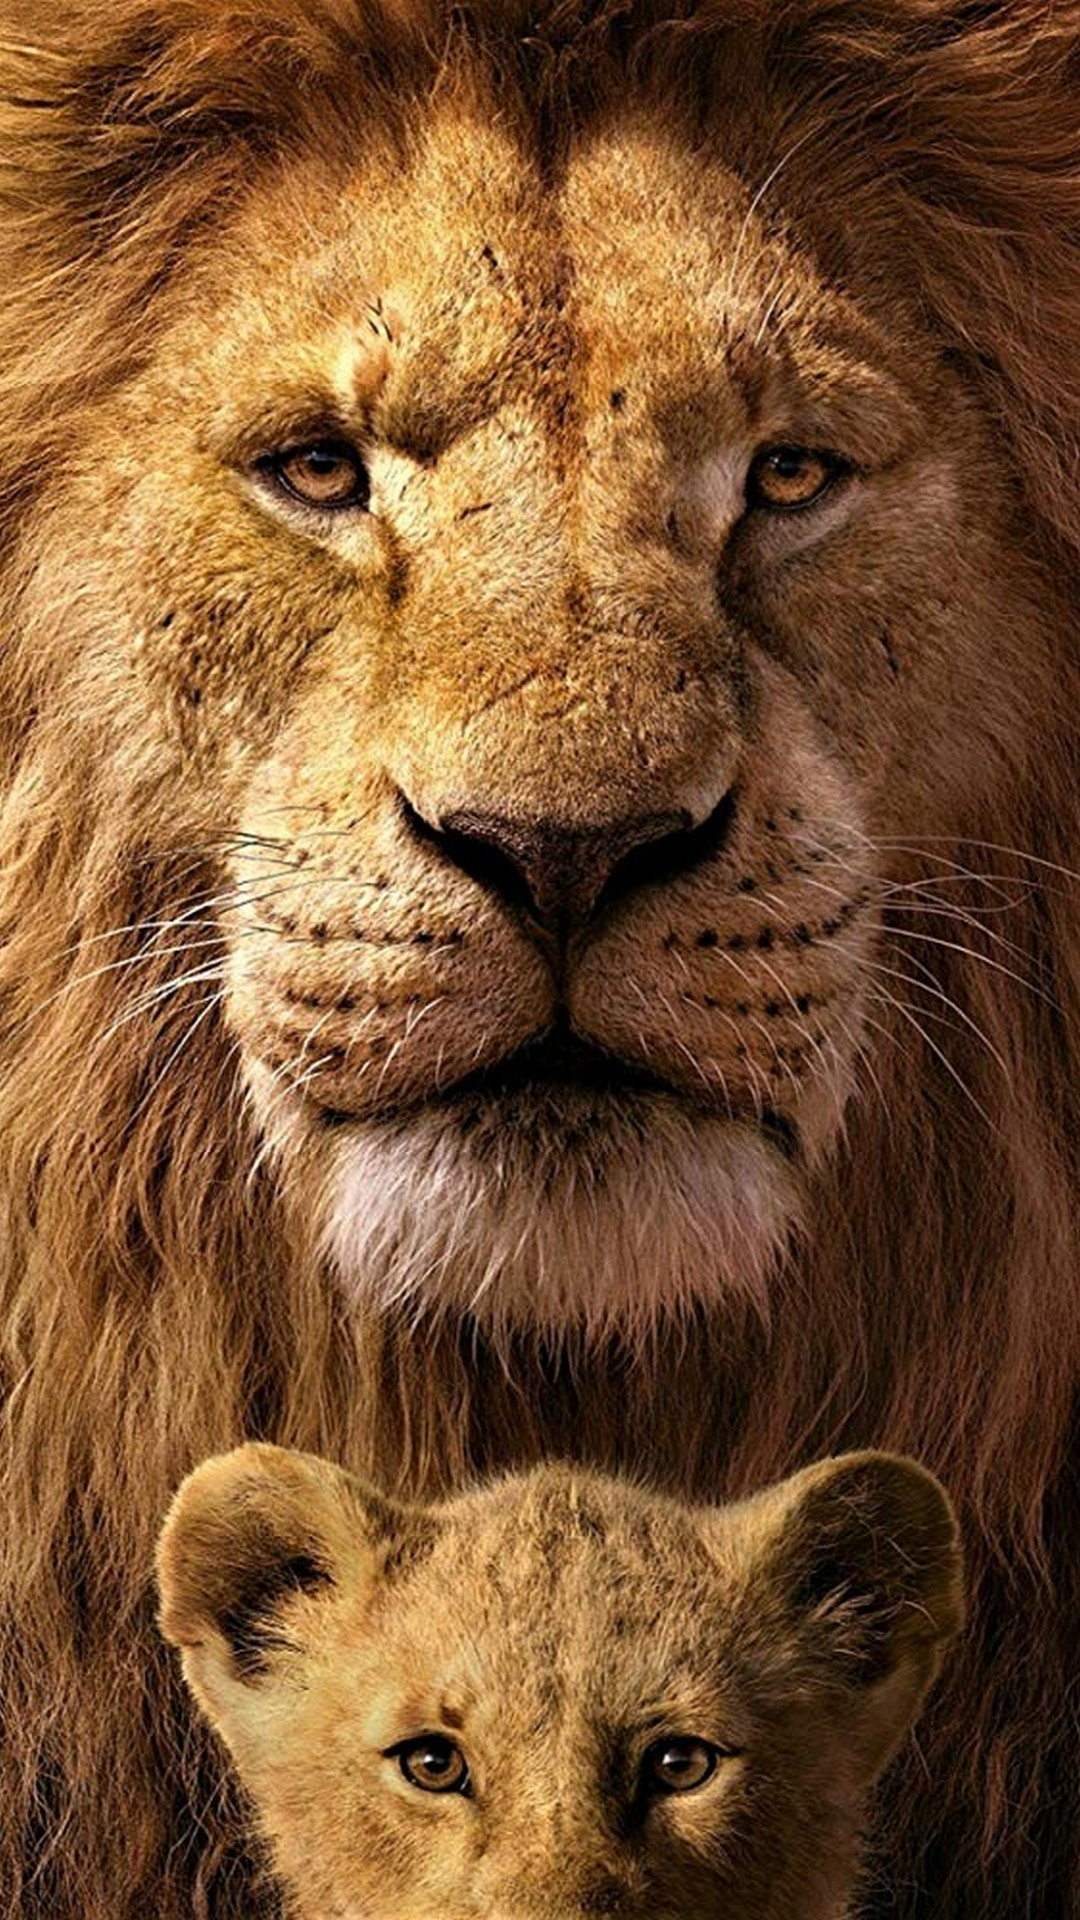 The Lion King Iphone 6 Wallpaper With High-resolution - Mufasa And Simba 2019 , HD Wallpaper & Backgrounds